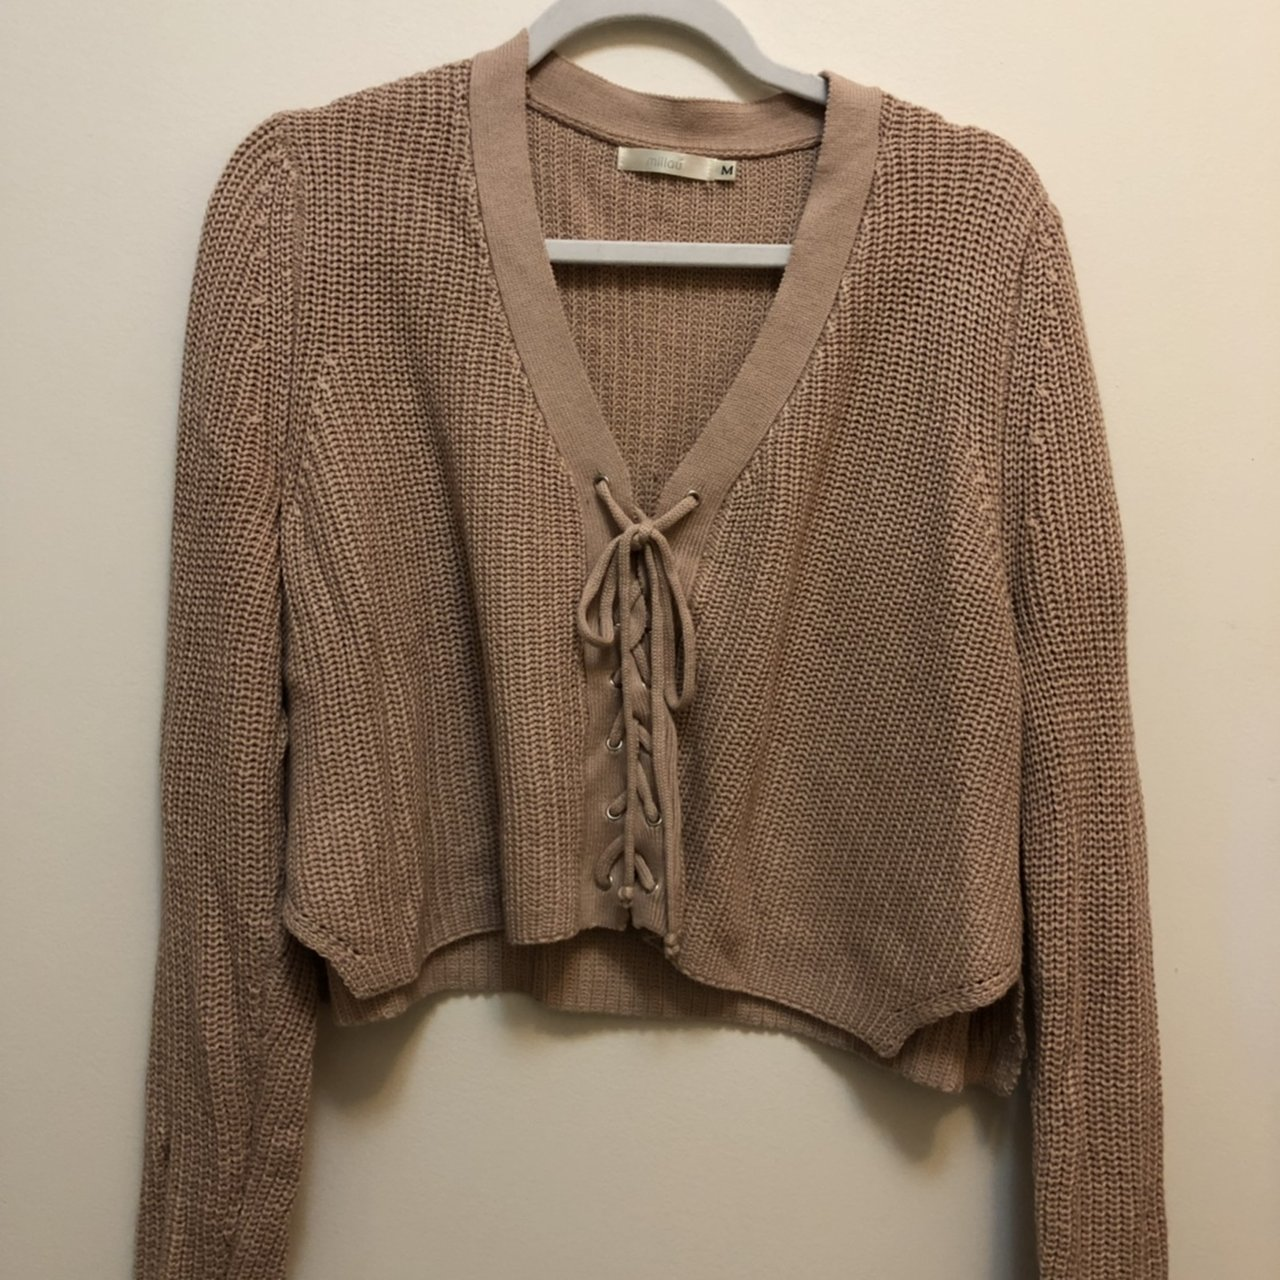 a8c4a74ae6 LF Stores Lace Up Sweater in Blush Pink - good condition - - Depop